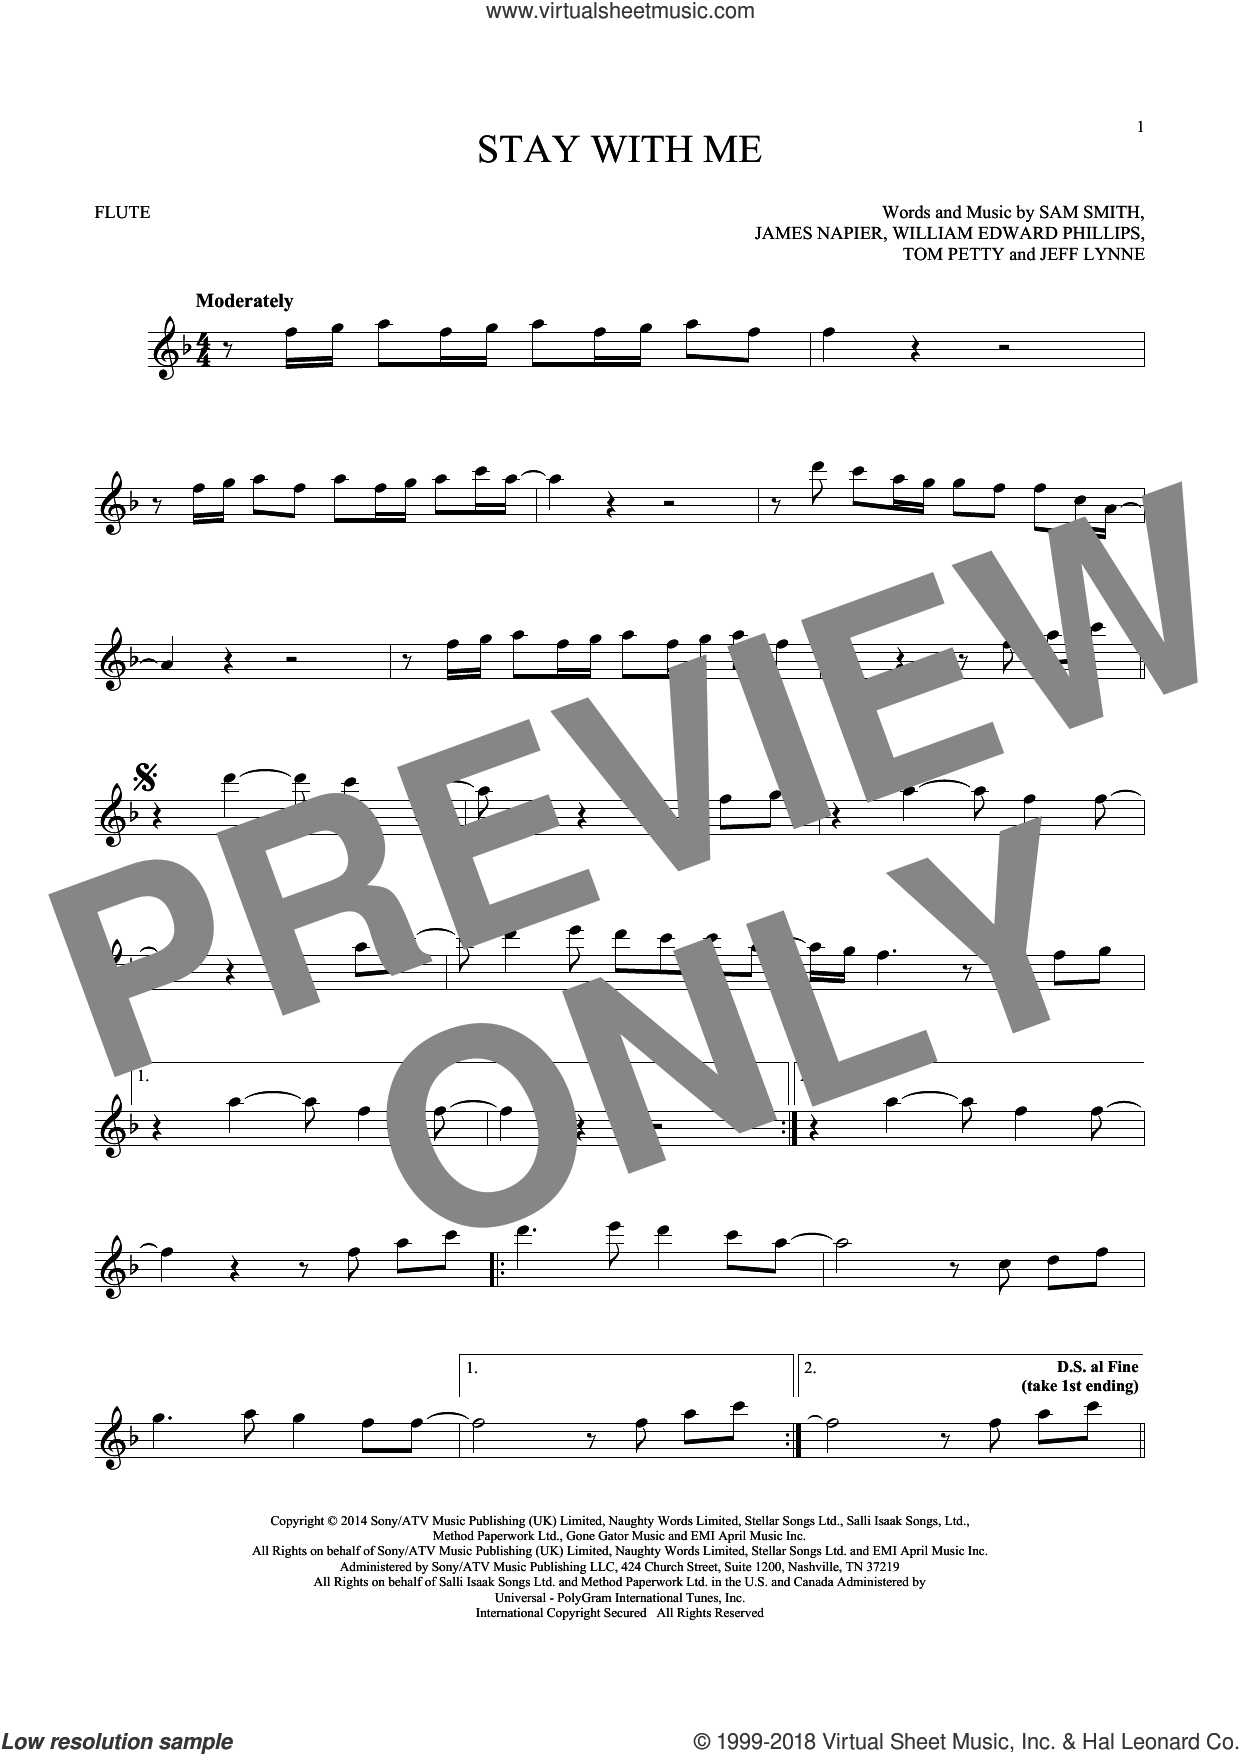 Stay With Me sheet music for flute solo by Sam Smith, Jeff Lynne and Tom Petty. Score Image Preview.